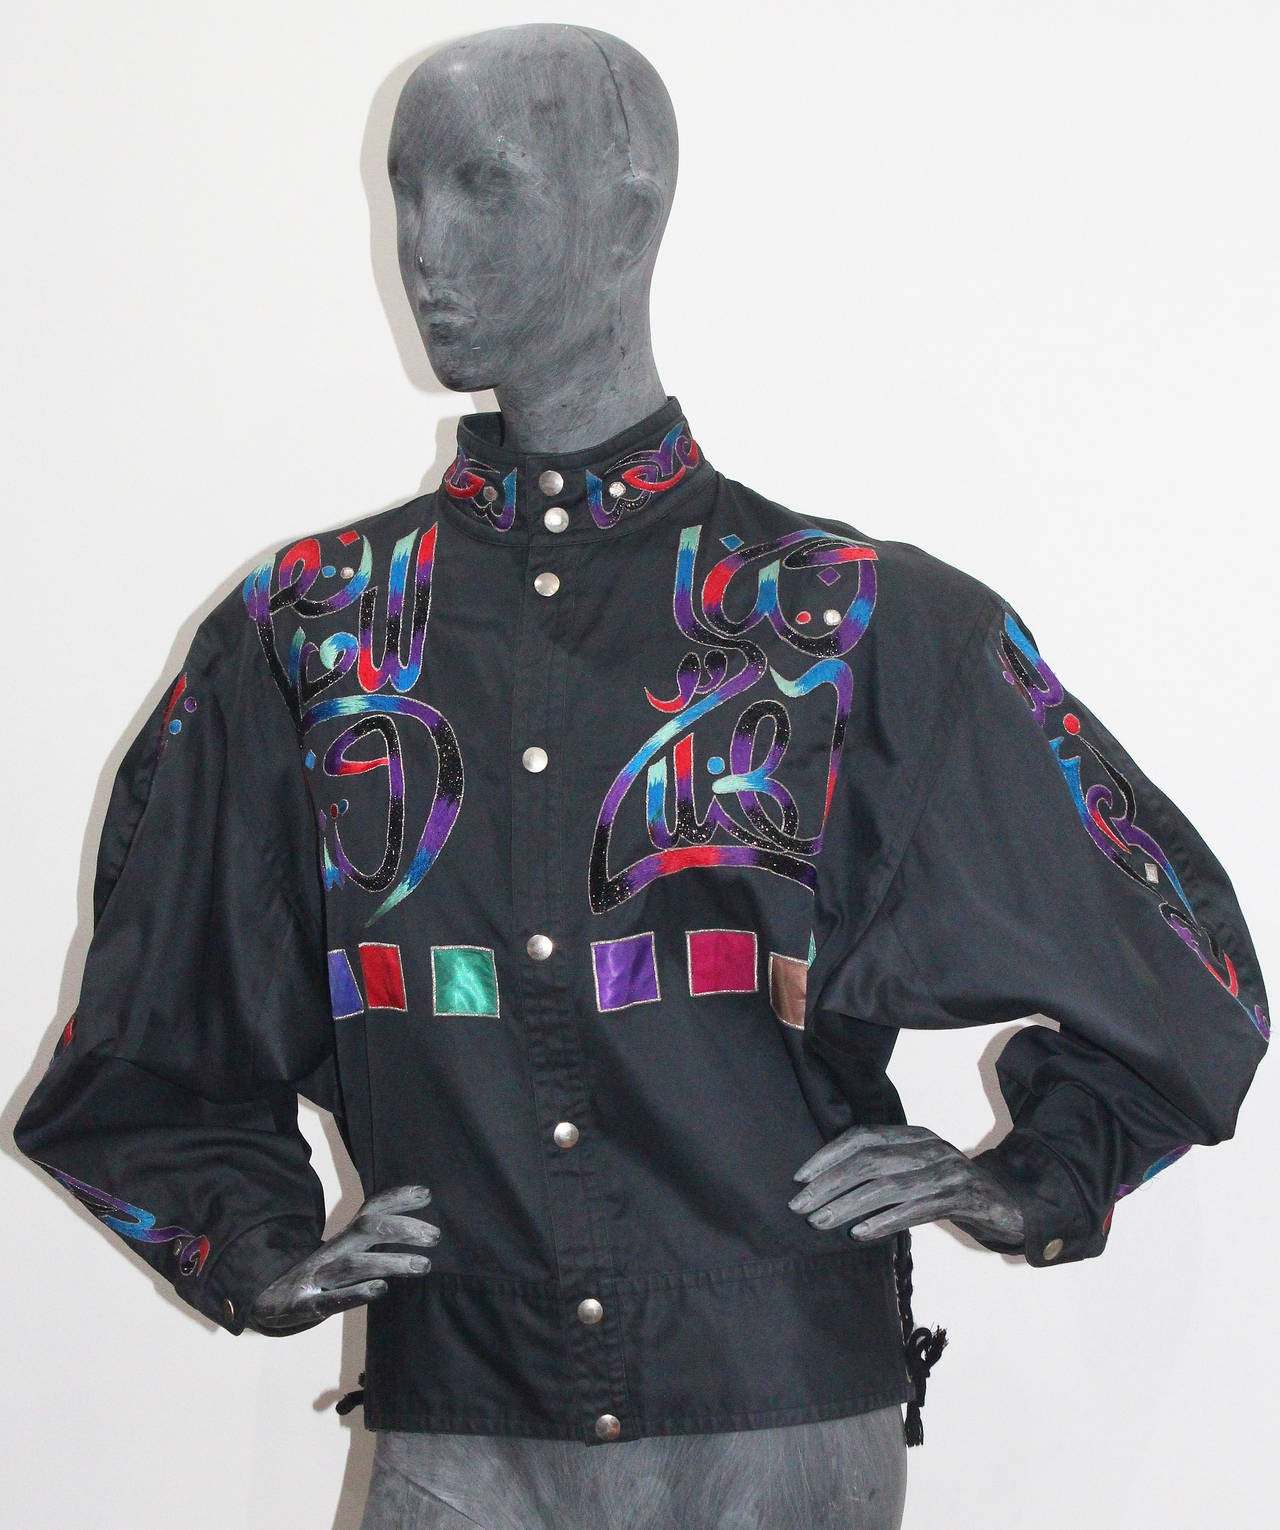 A very rare embroidered Buddha black cotton bomber jacket by Kansai Yamamoto. The features lace up sides, metal thread and multi coloured embroidery.   Medium  Kansai Yamamoto is known for his highly conceptual and innovative designs in the 70s